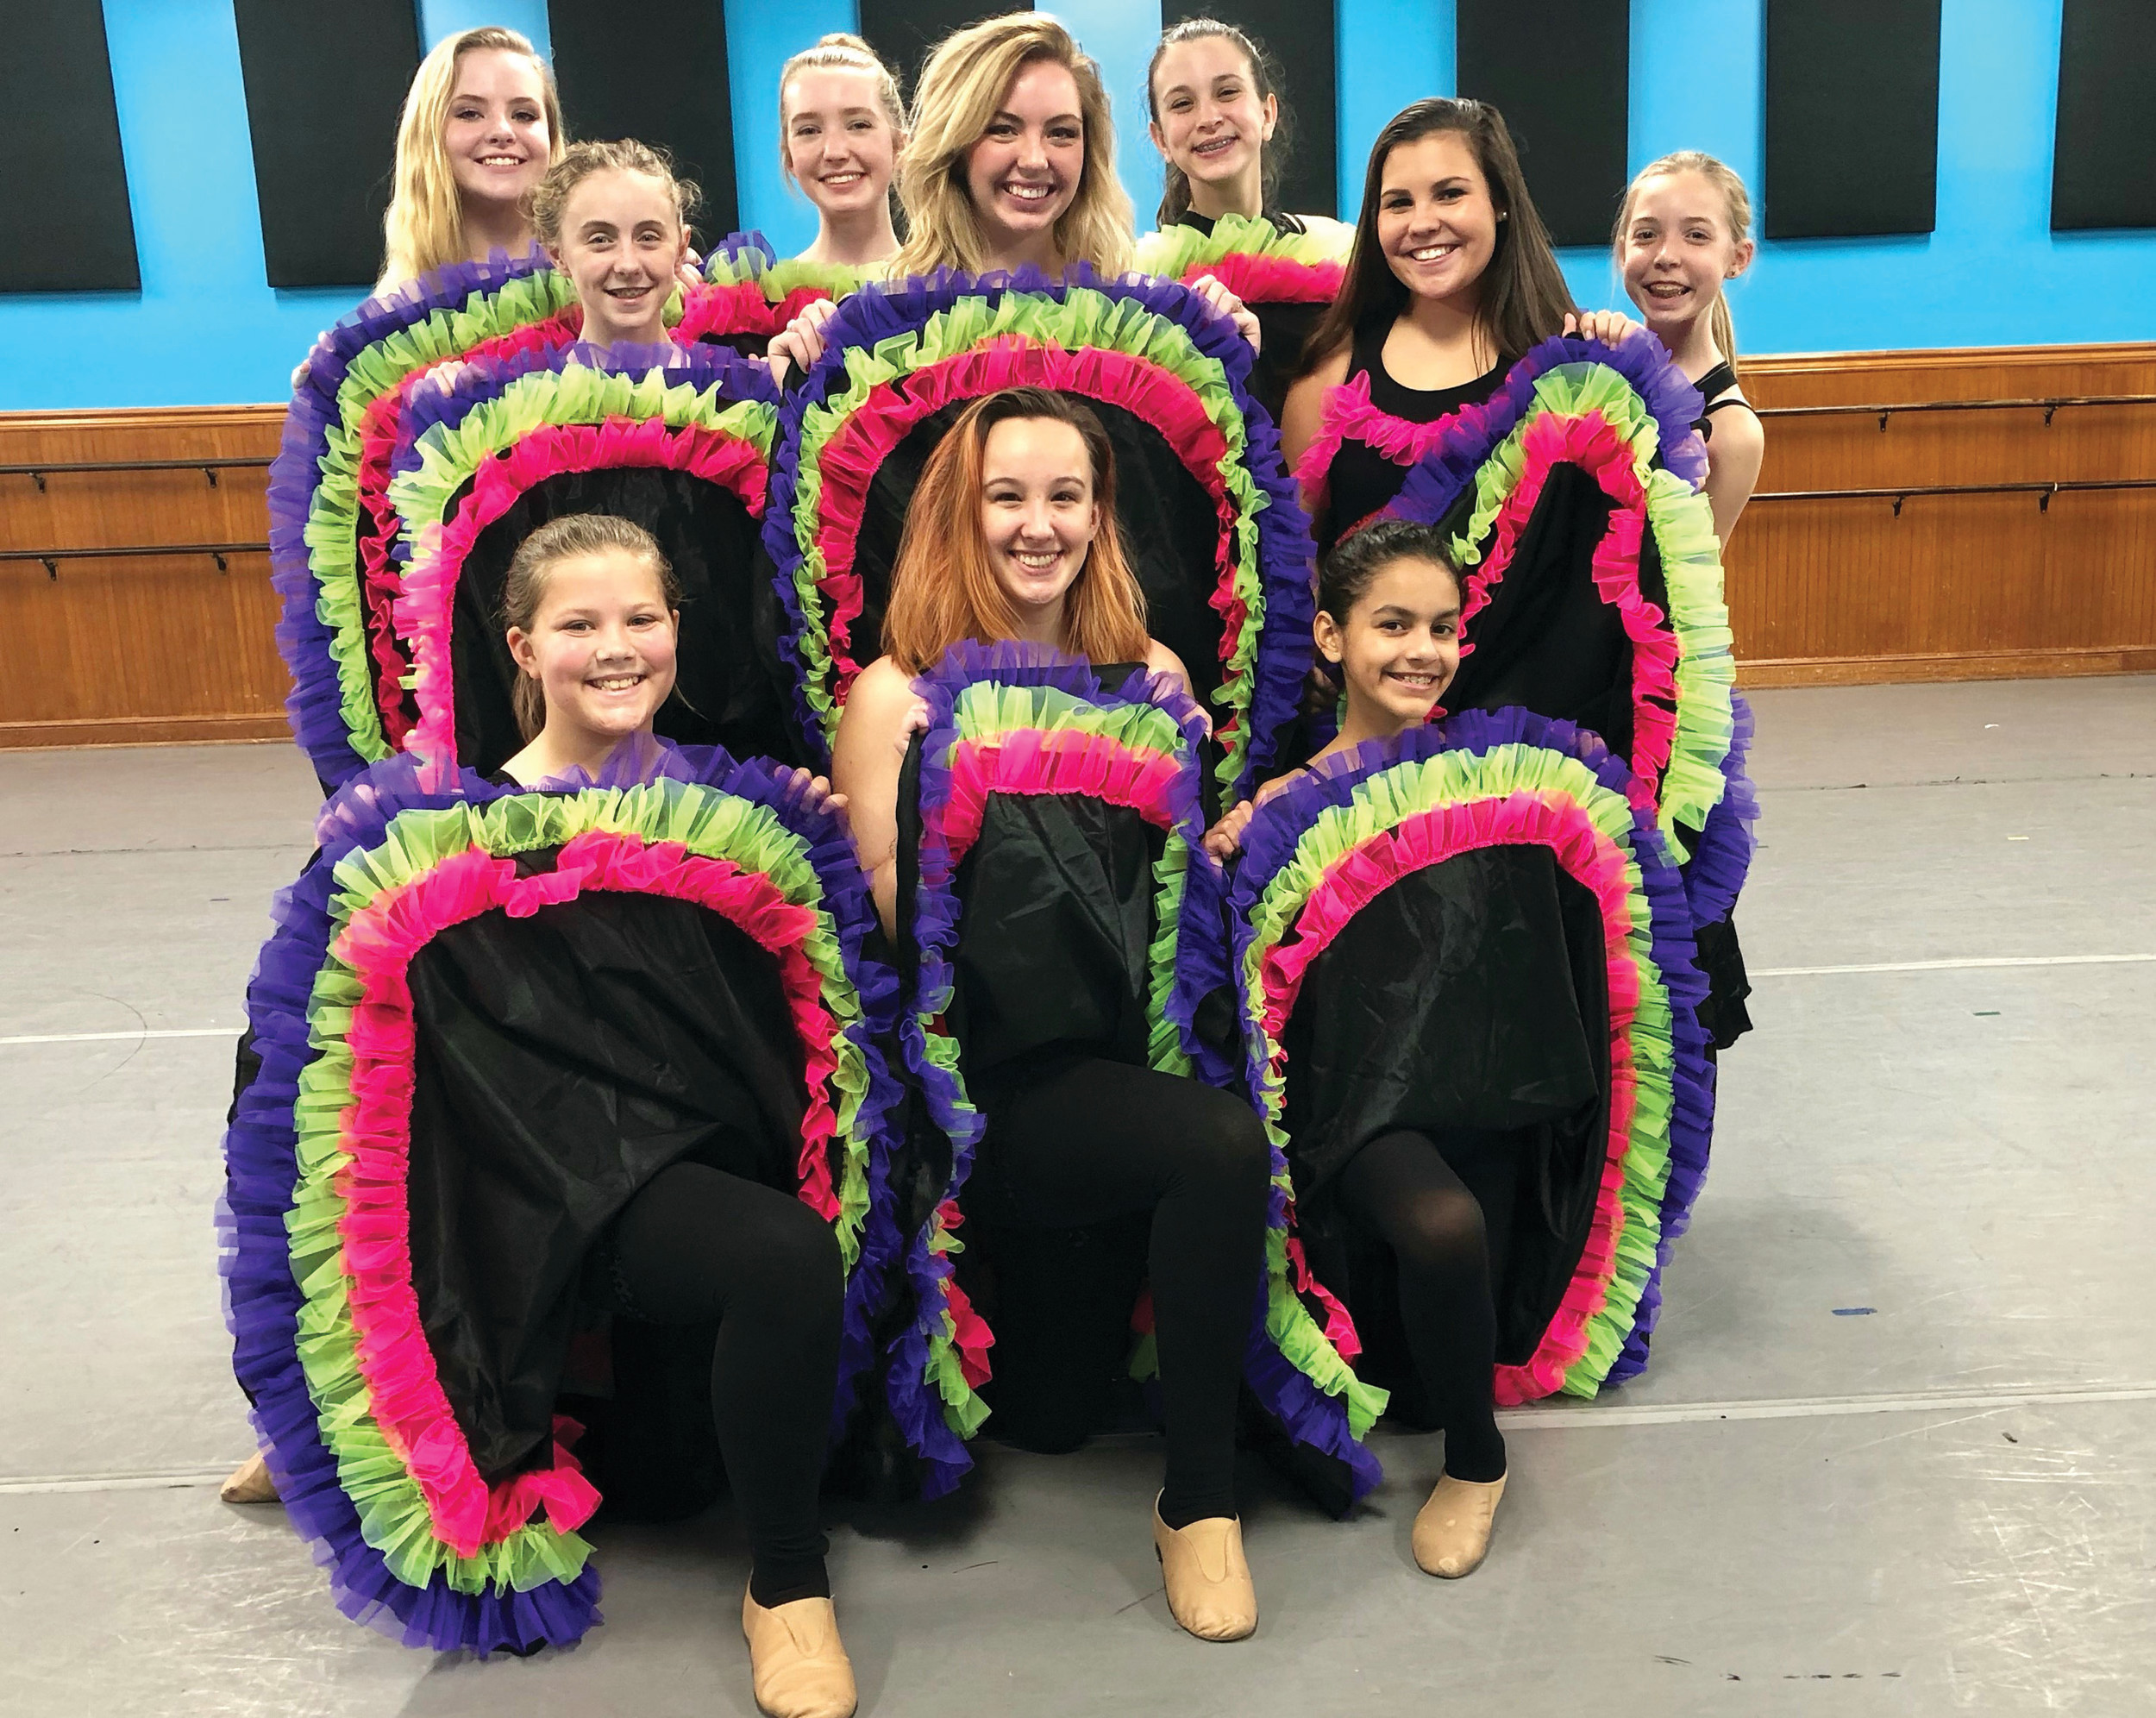 Christmas Can Can, danced by the Sumter Civic Apprentice Company, will open Scene 3, titled Gifts and Toys, of Jingle with the Arts. There will be three performances of the 23rd-annual Christmas show of music and dance, at 7 p.m. Friday and Saturday and a 3 p.m. matinee on Saturday.